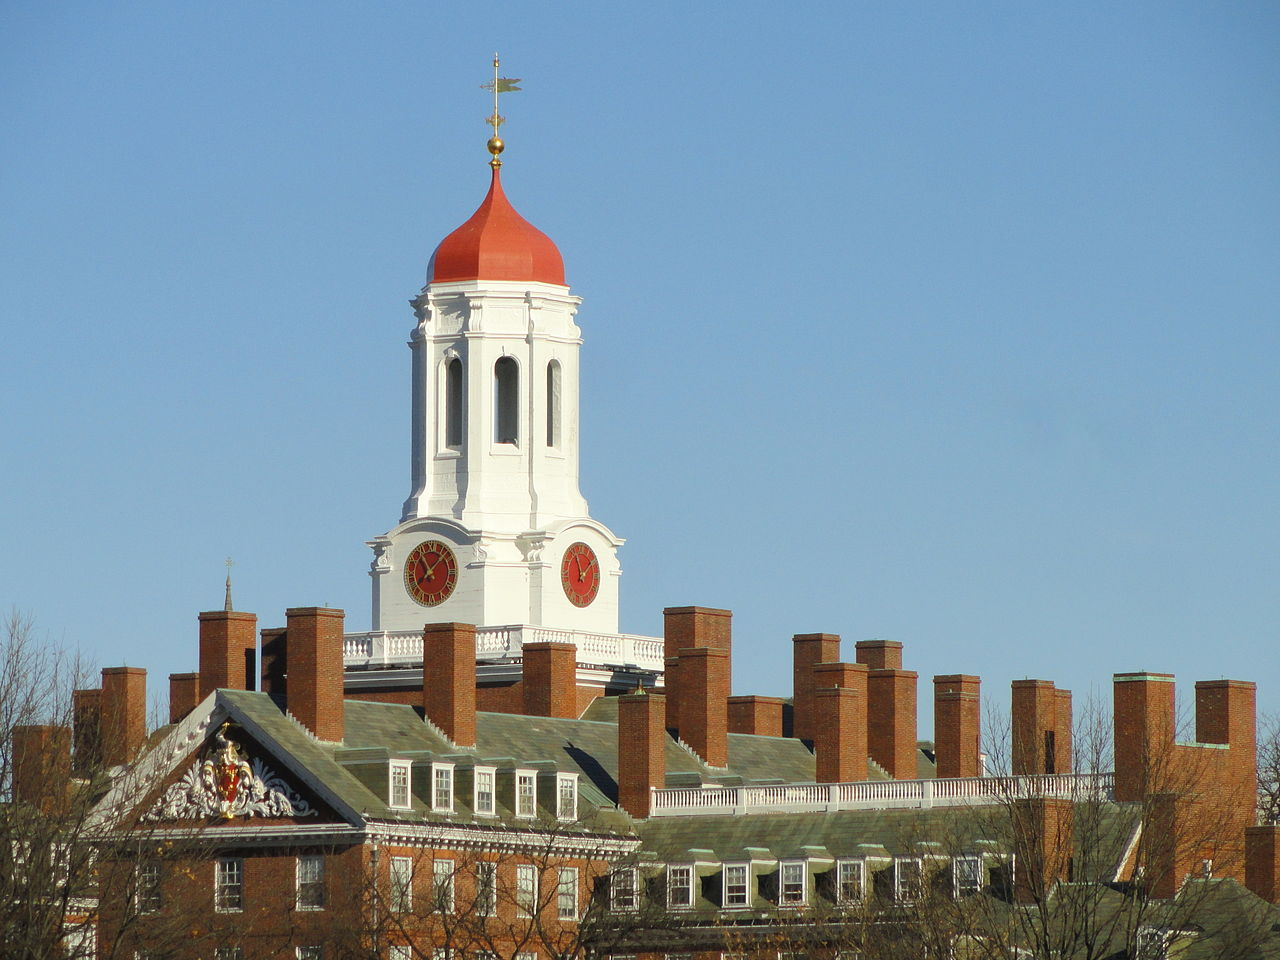 1280px-Dunster_House_roofline_-_Harvard_University_-_DSC03005